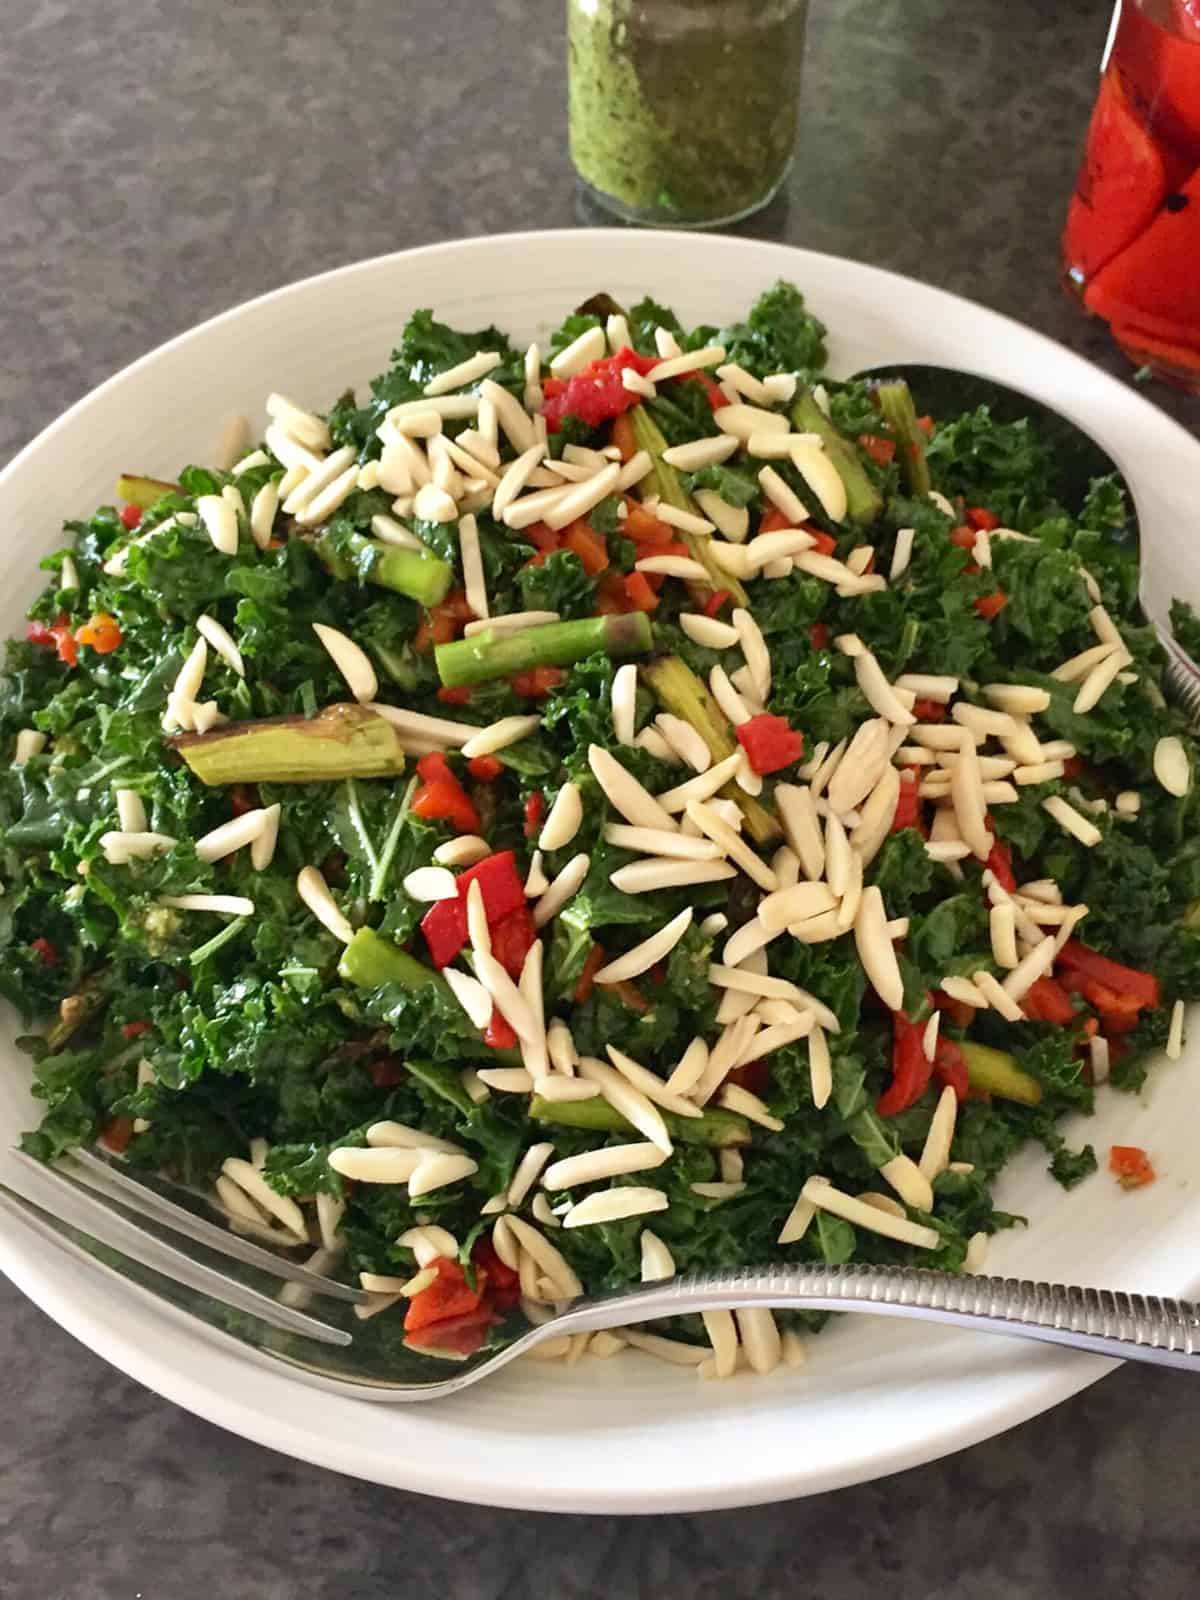 GRILLED ASPARAGUS & KALE SALAD PORT